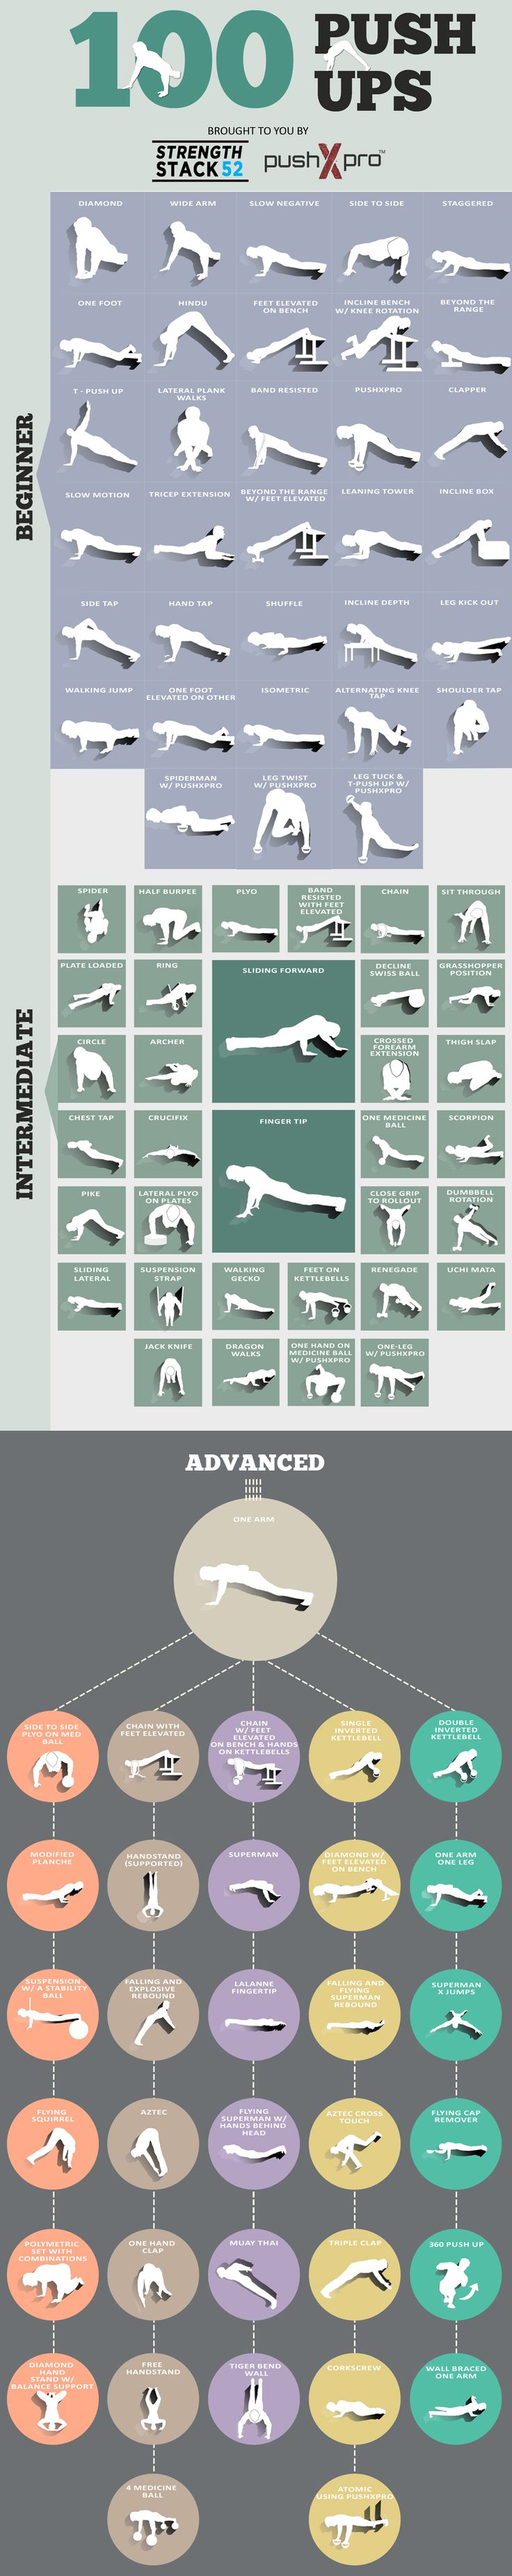 push-up-variations